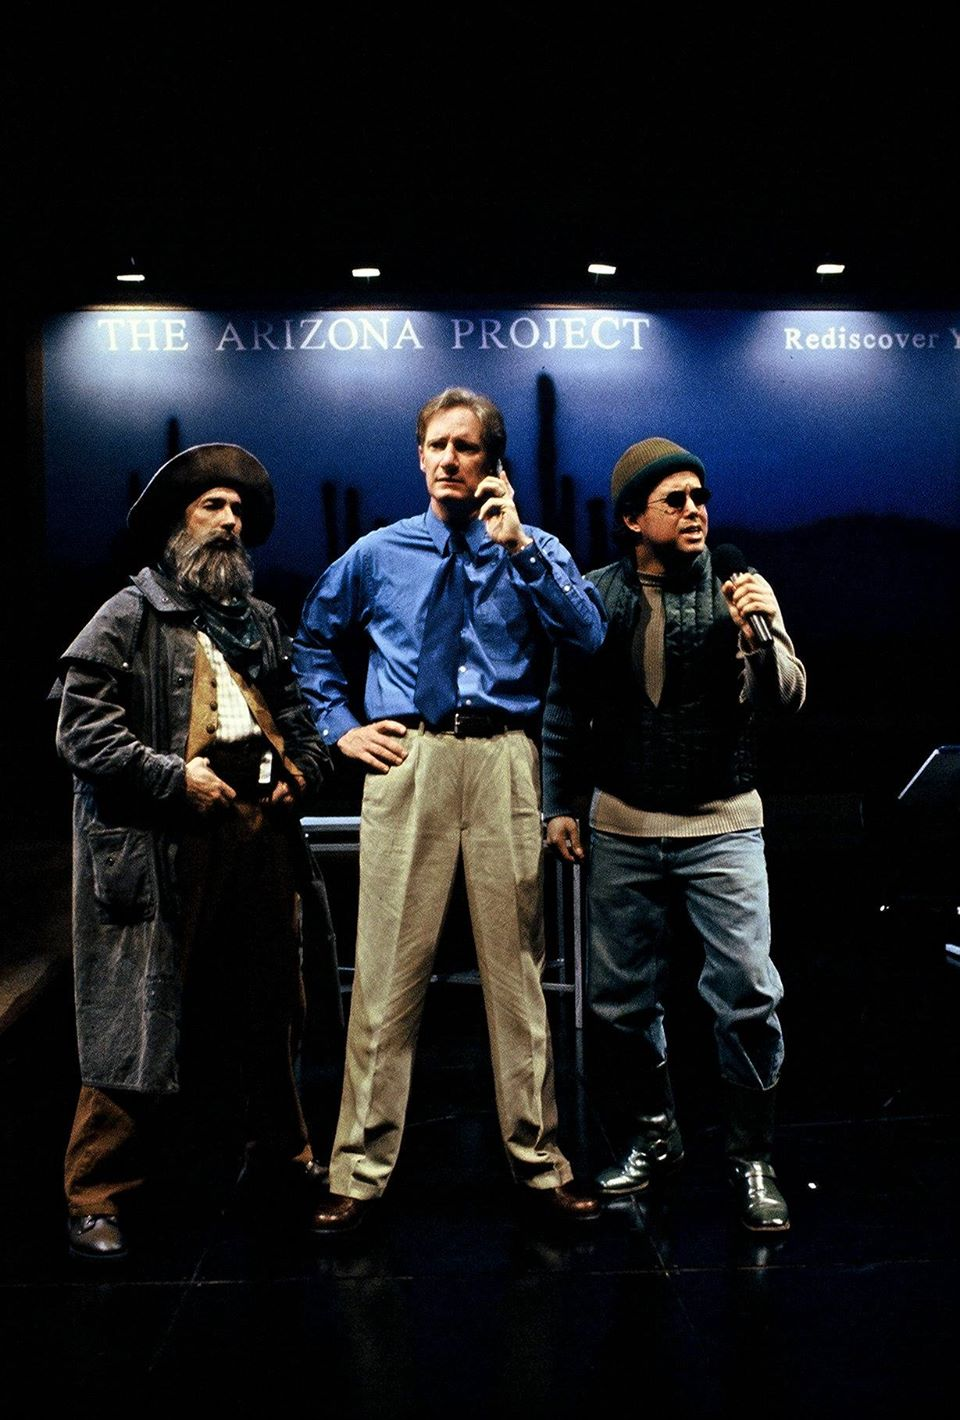 Actors Theatre, 2000, The Arizona Project. Jon Gentry, Bob Sorenson, Richard Trujillo. (Photo credit unknown)